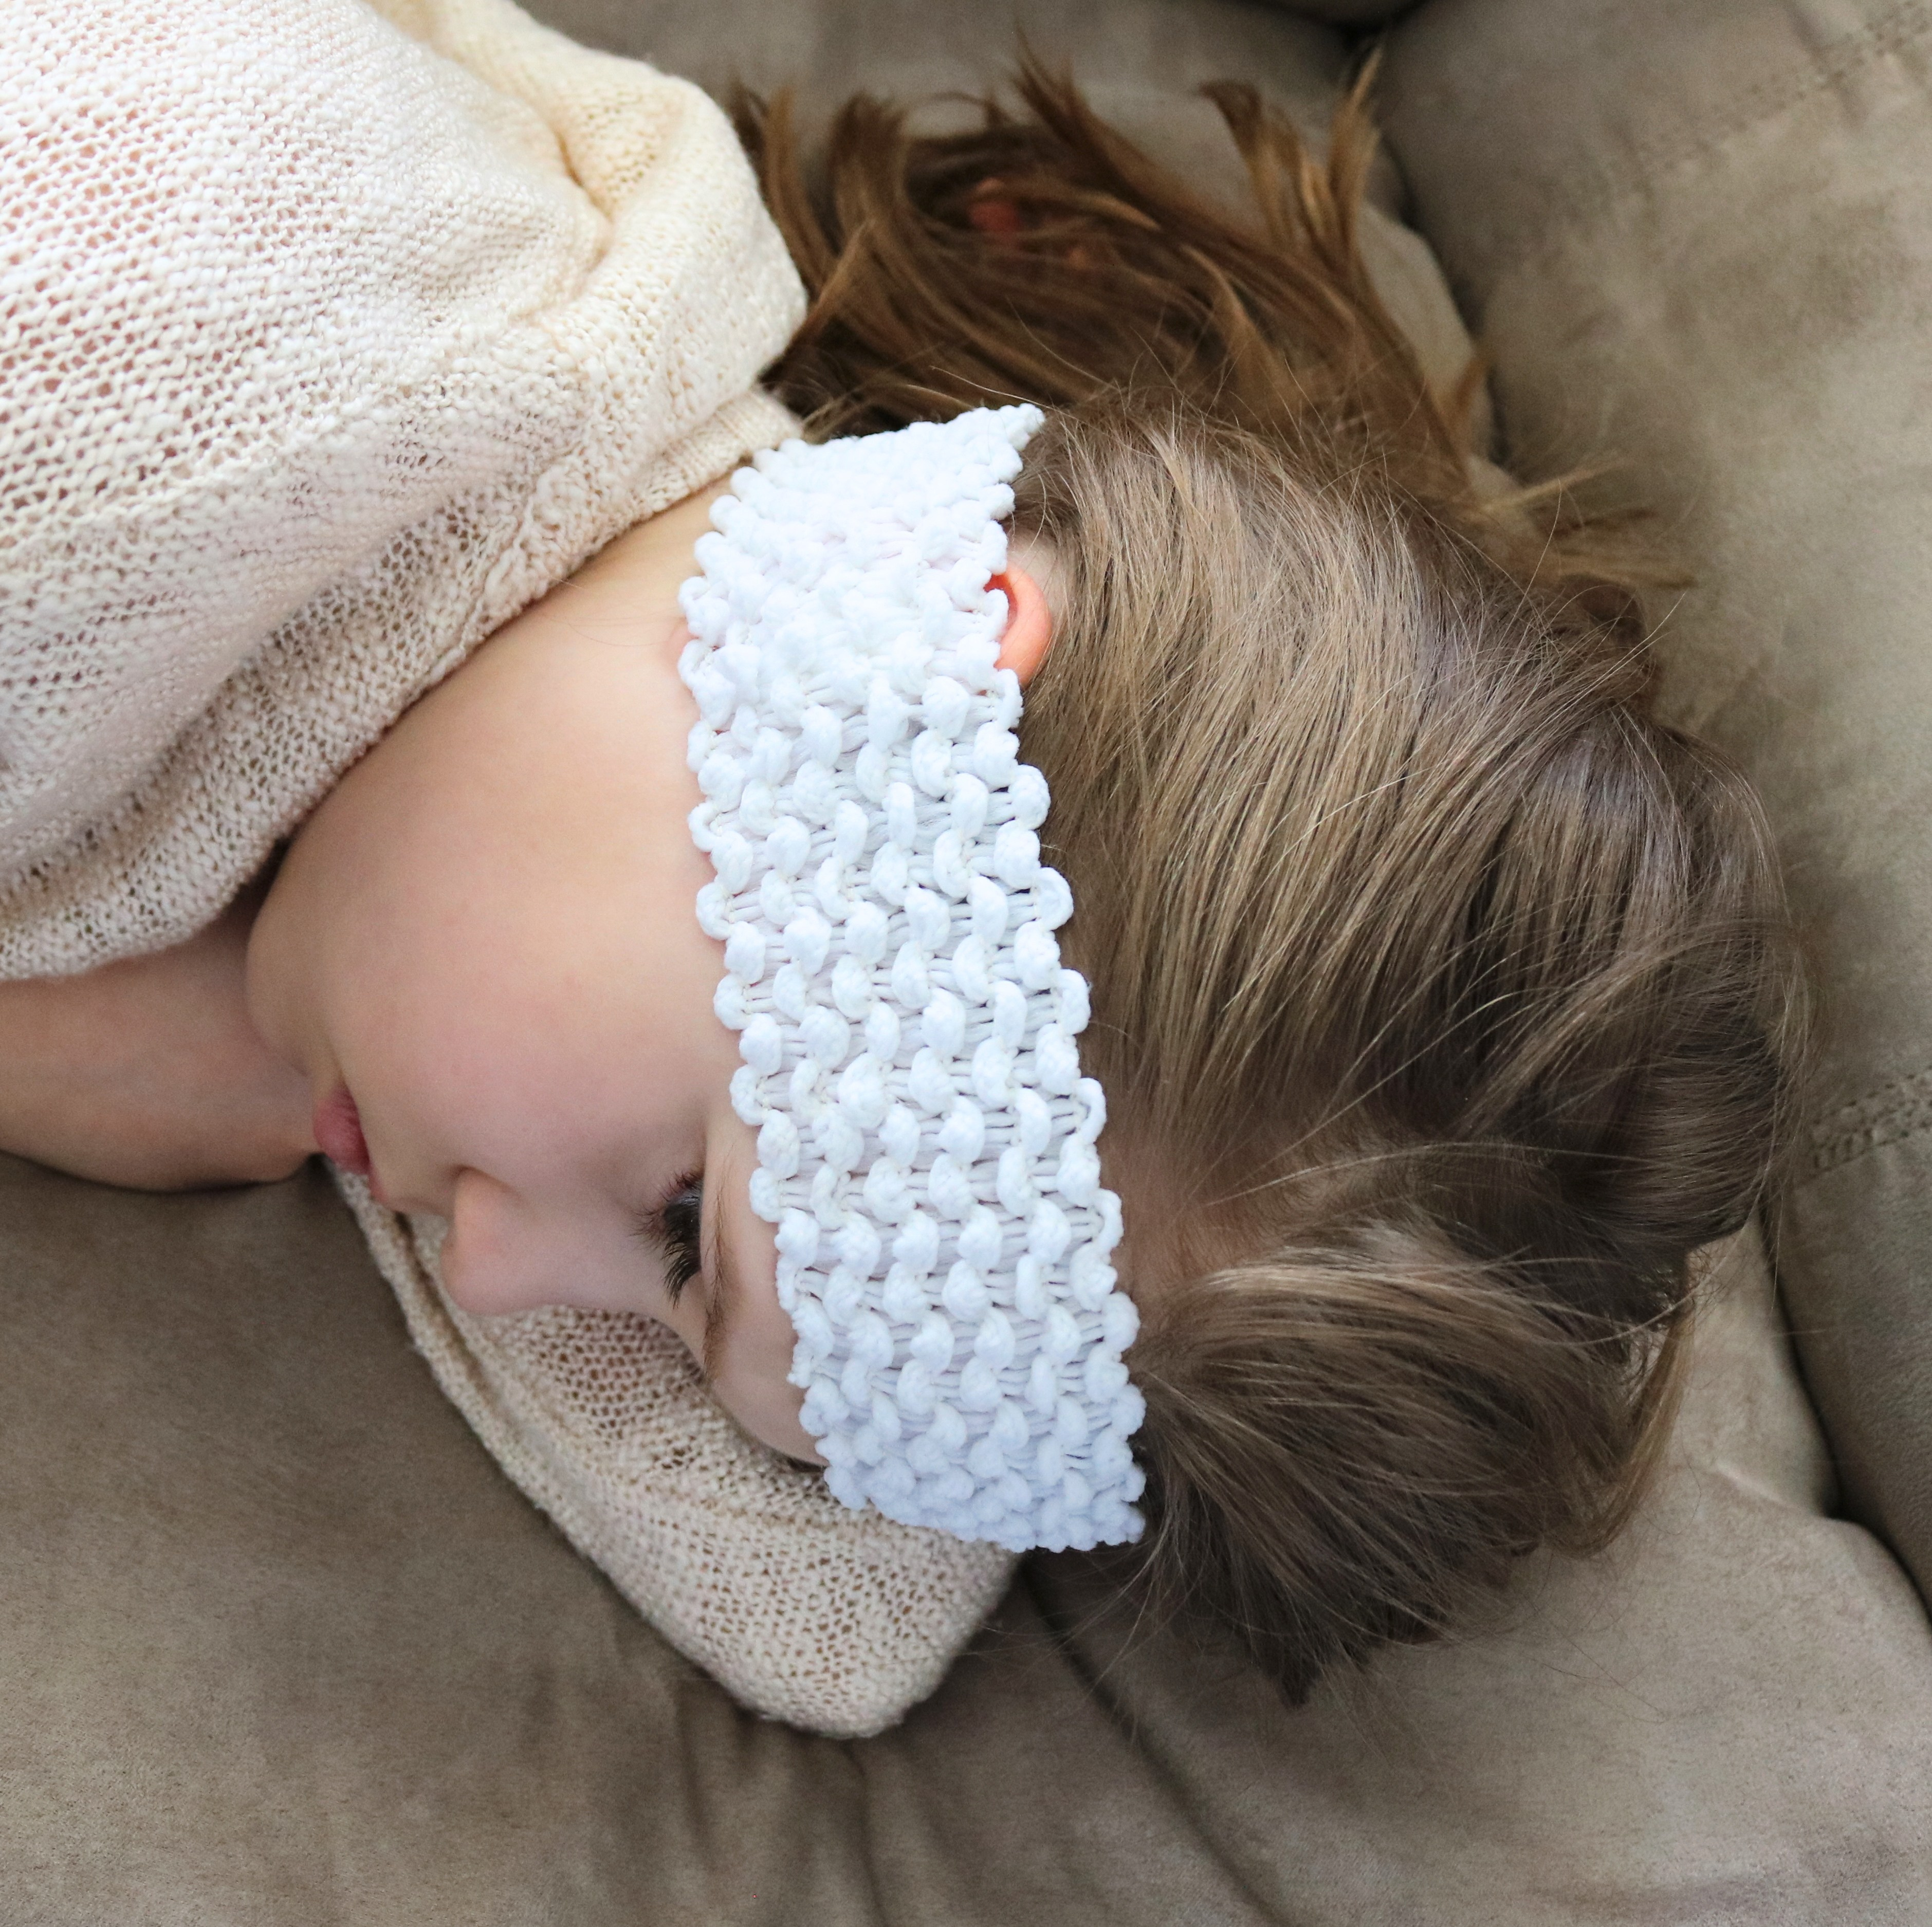 Keep infected ear warm to speed the recovery process. Treat ear at home without antibiotics.